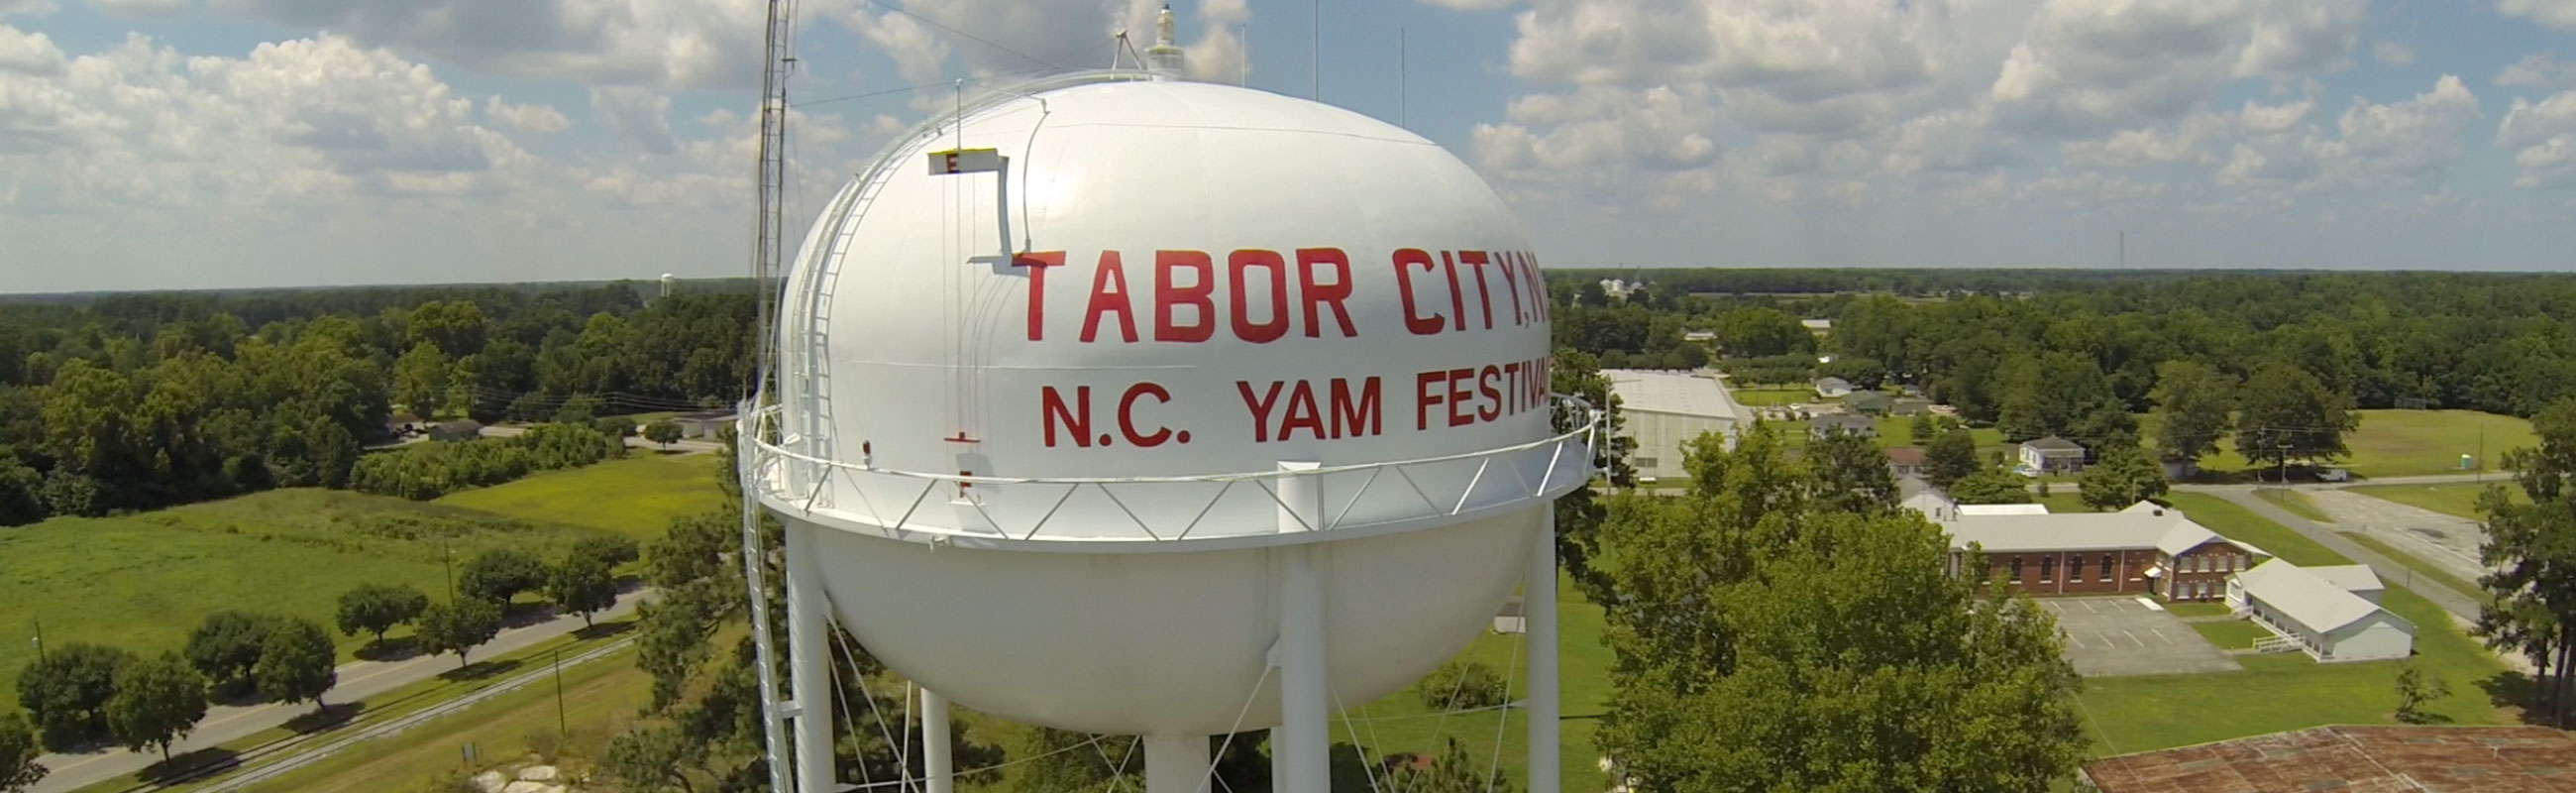 Tabor city yam festival water tower